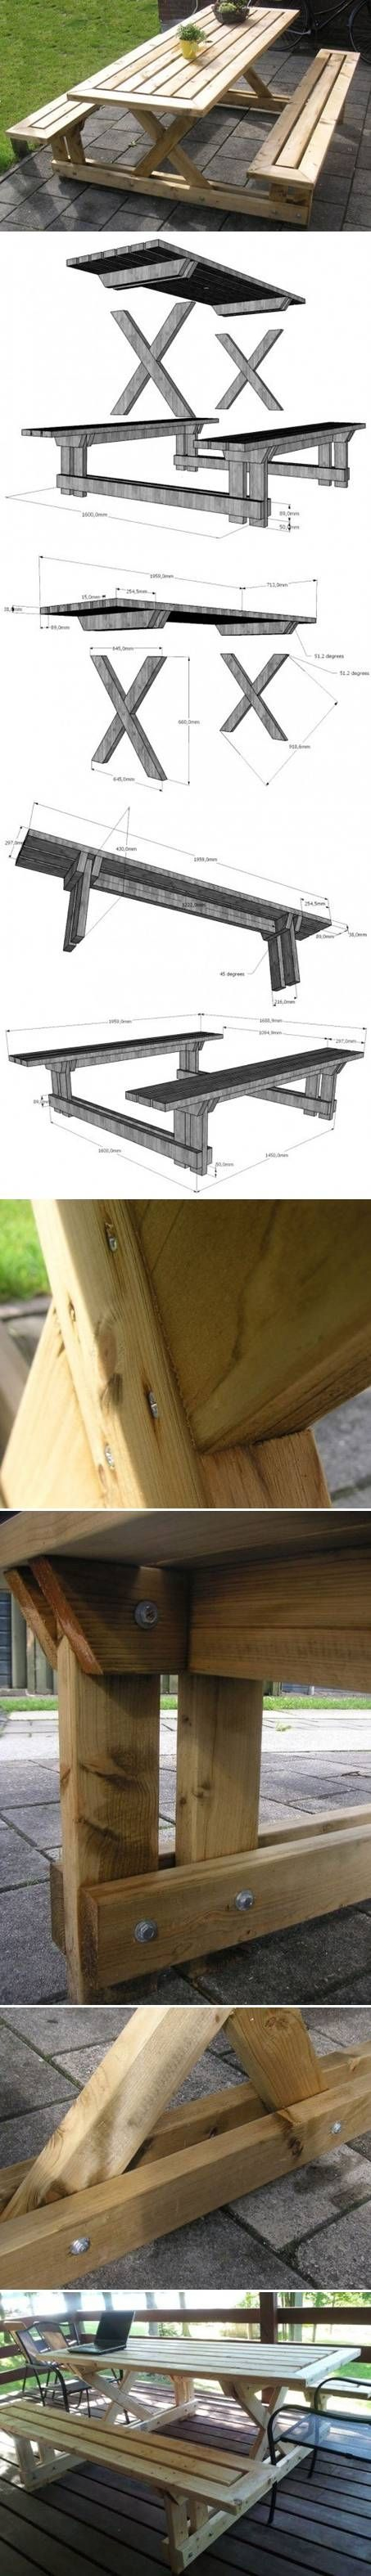 DIY Garden Bench and Table DIY Garden Bench and Table by diyforever